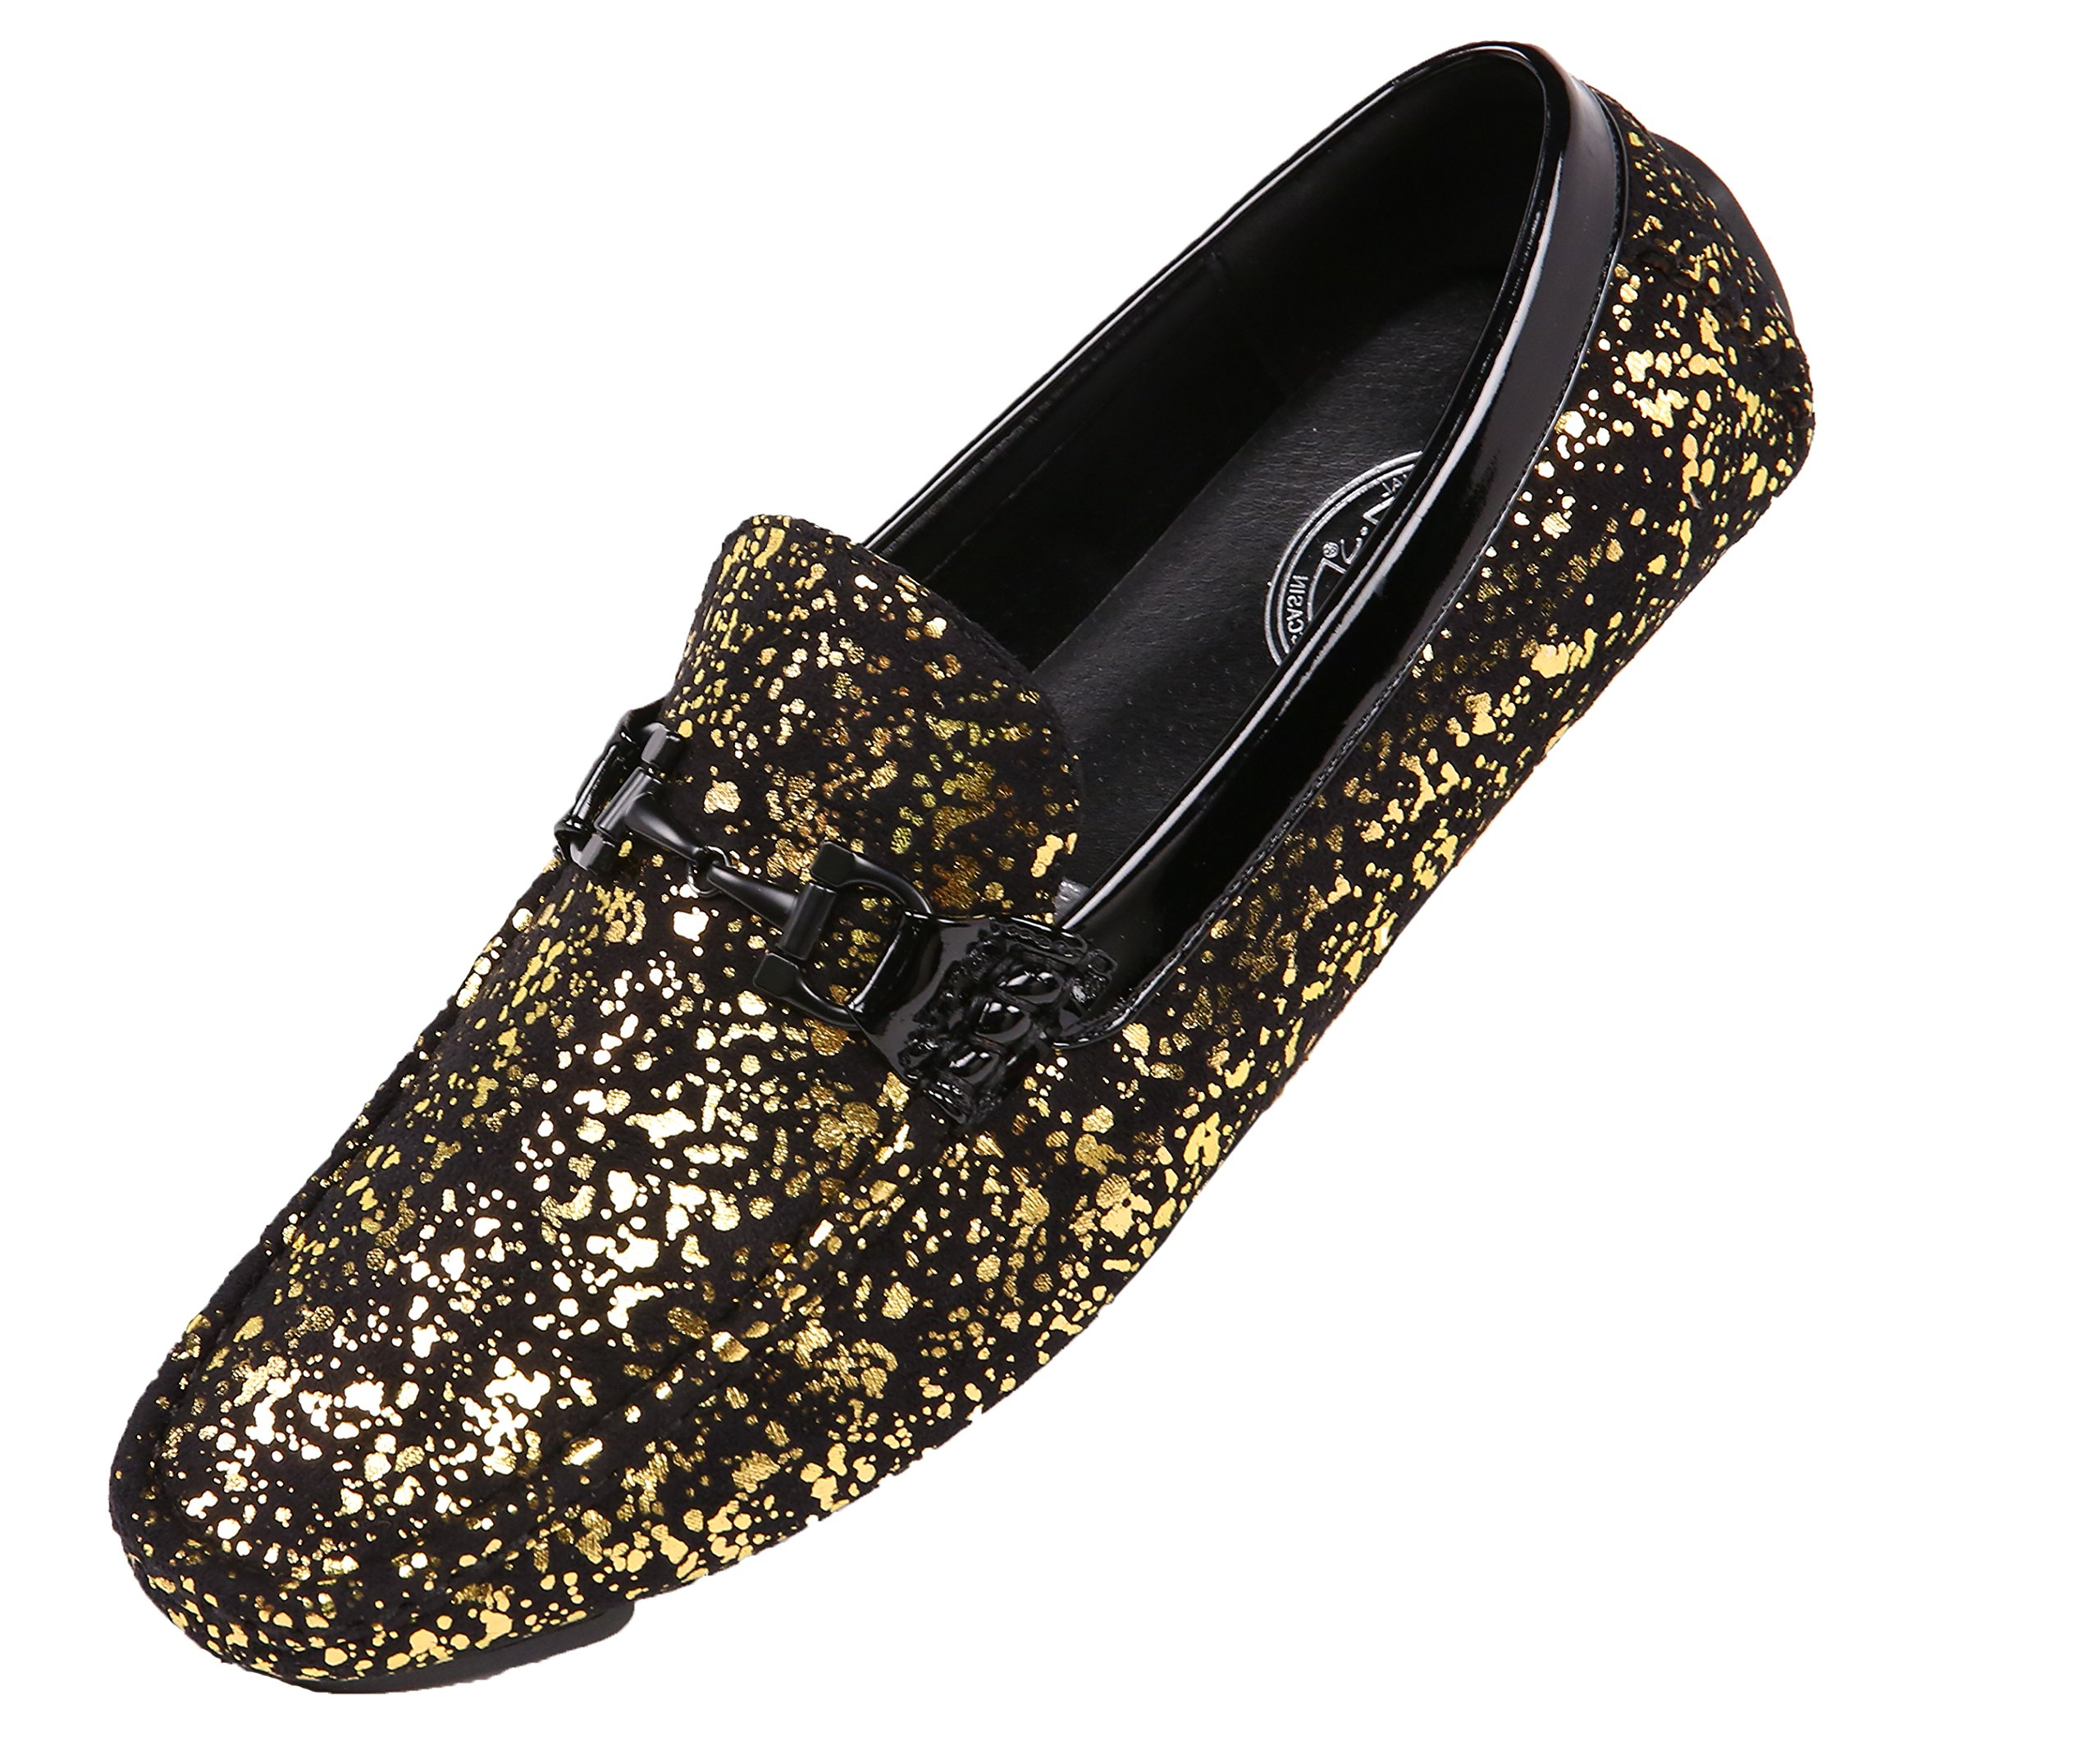 Amali Mens Metallic Splatter Black Microfiber Nightclub Driver, Slip On Loafer Driving Shoe with Ornament